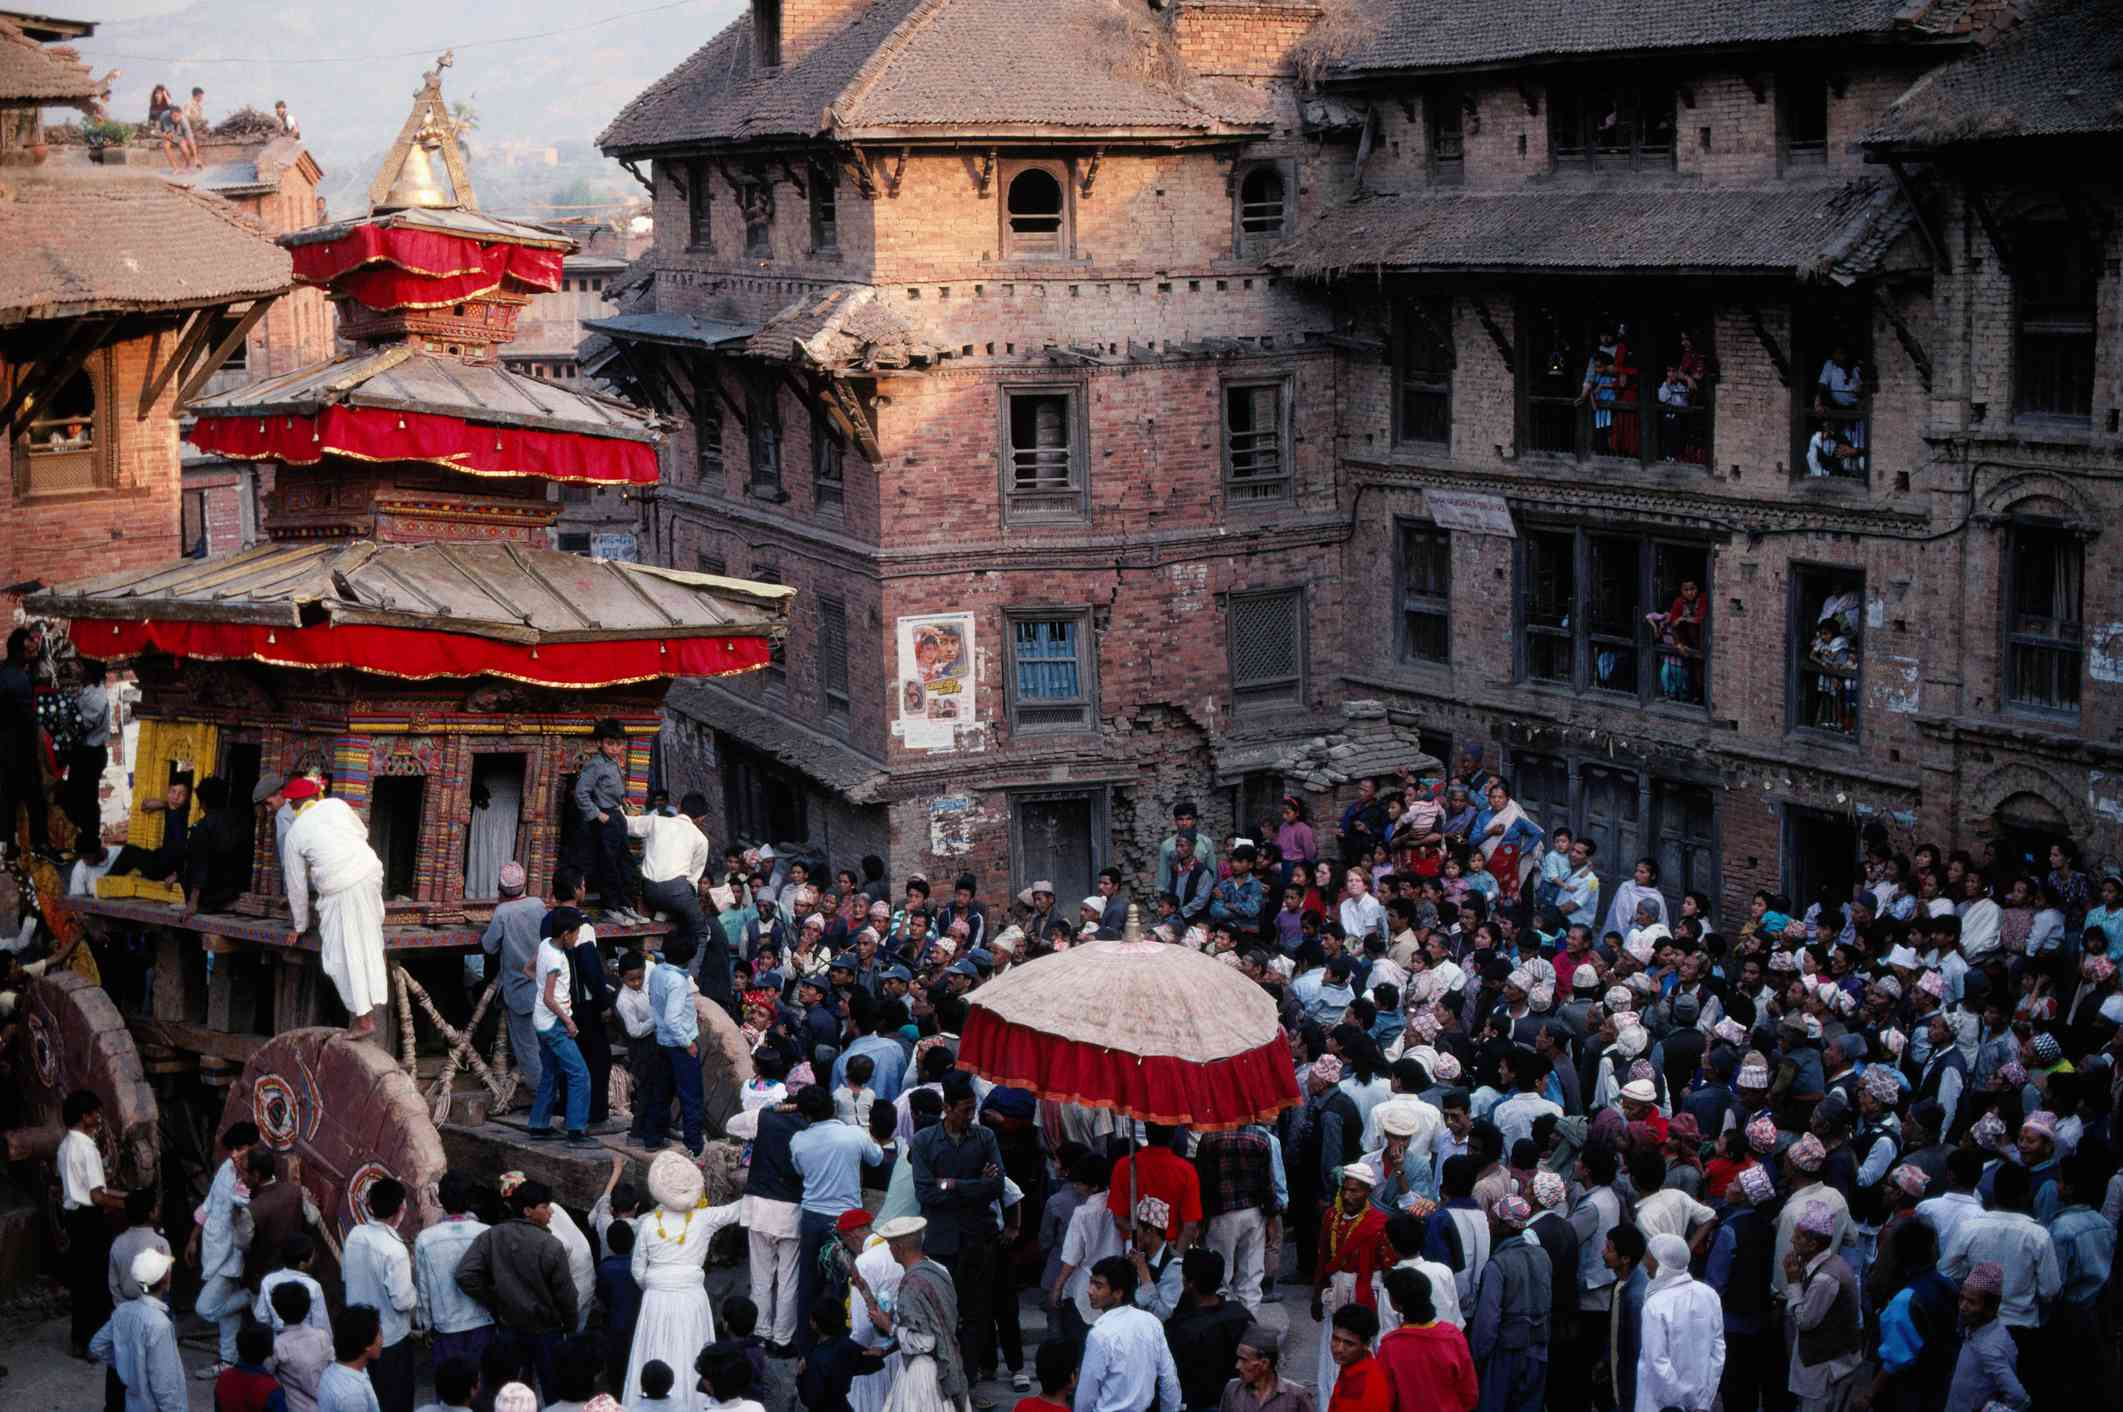 crowd of people standing around a wooden pagoda chariot with brick buildings behind